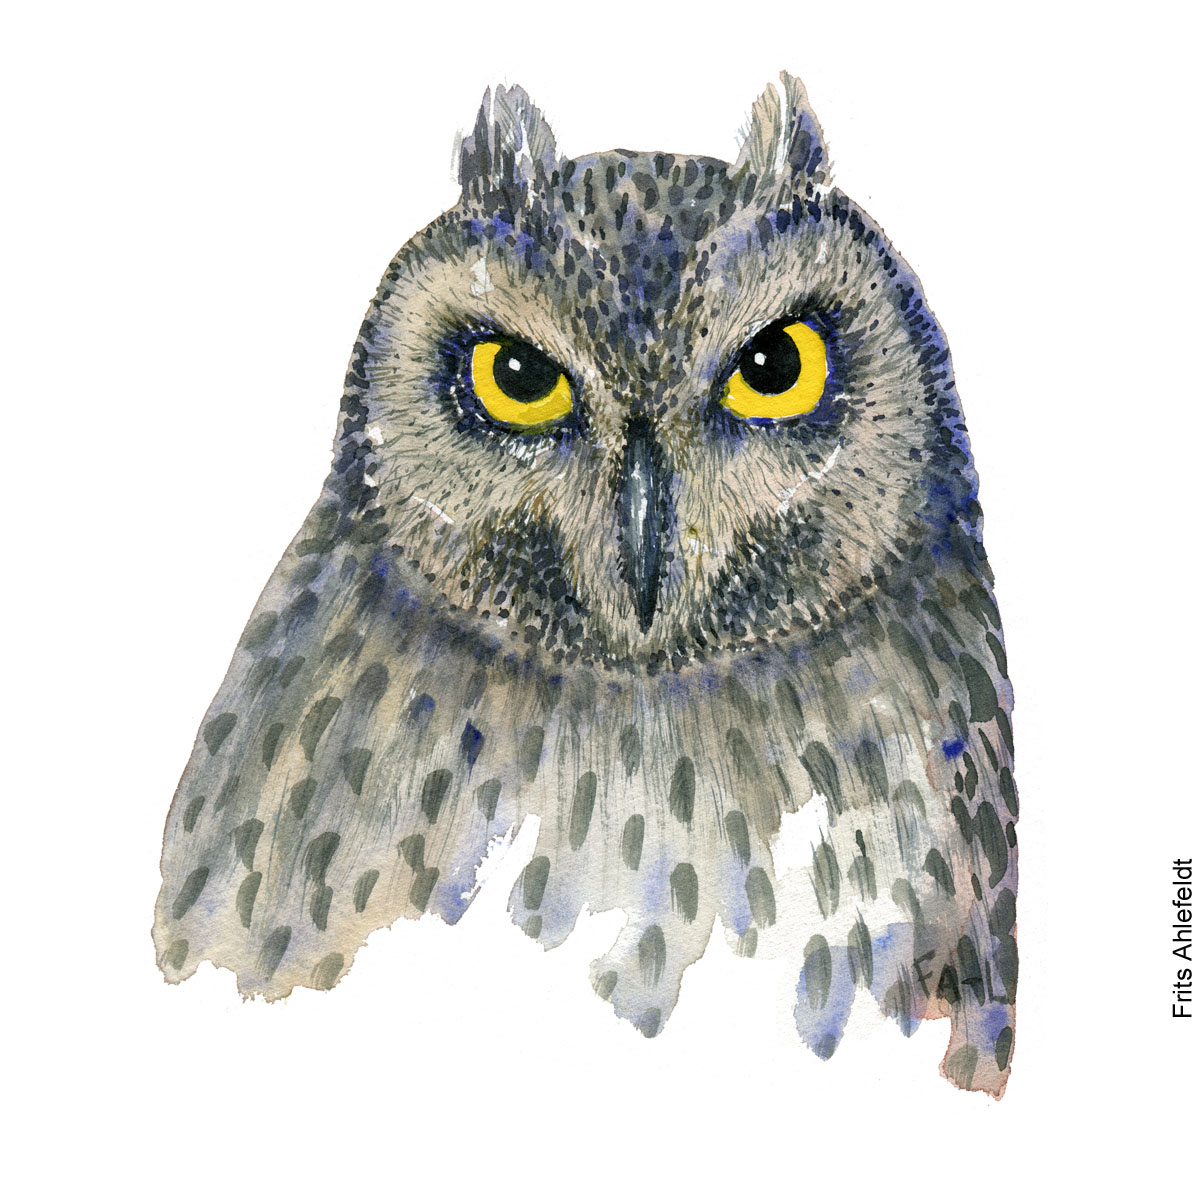 Watercolor of an owl with yellow eyes - Illustration by Frits Ahlefeldt